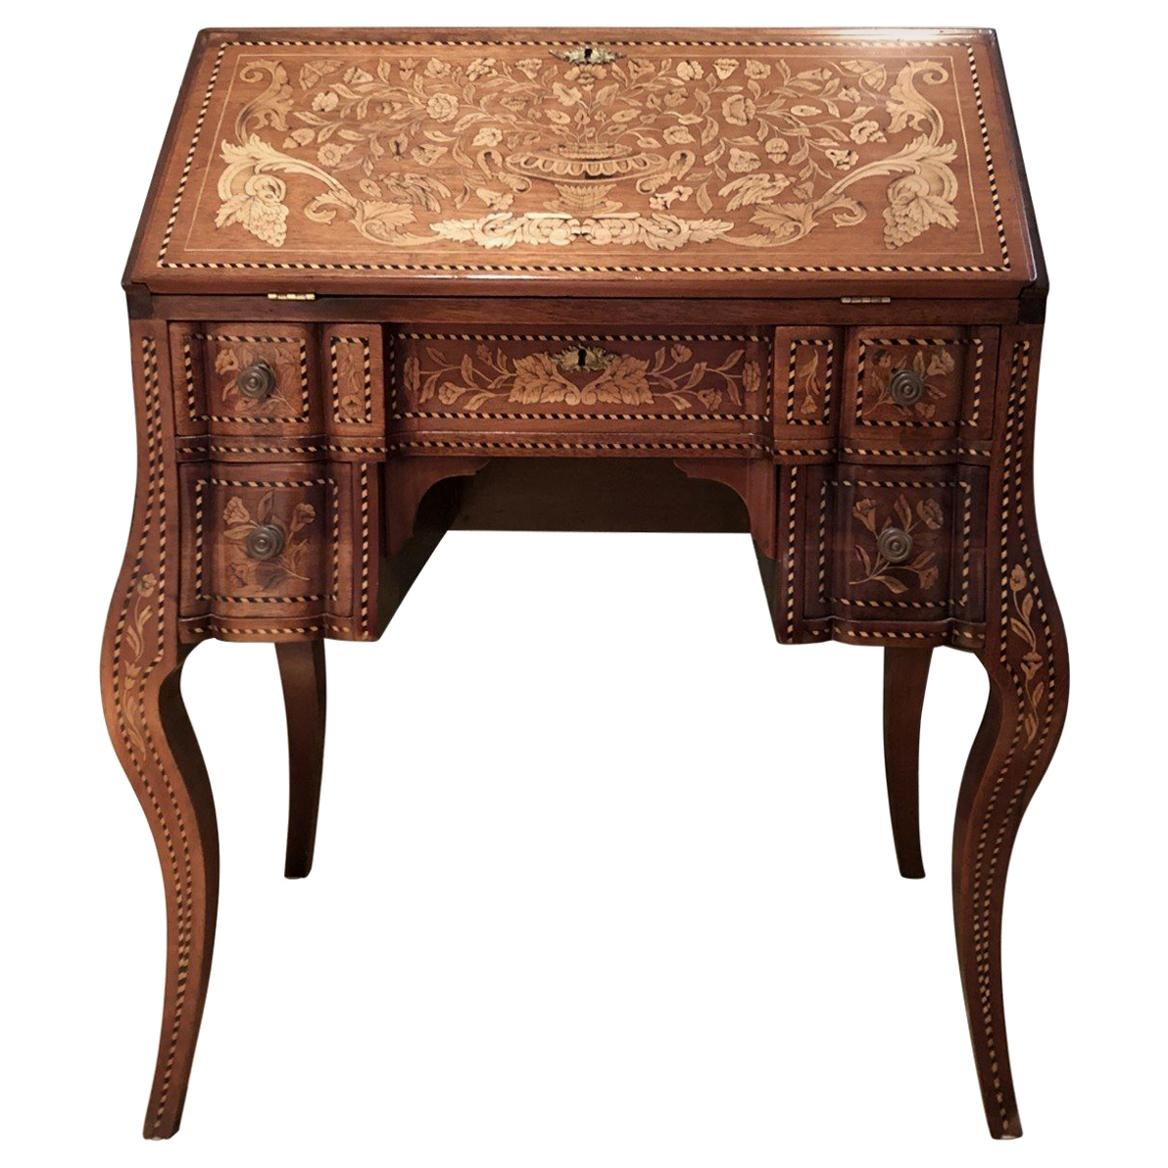 baroque tables for master accent table black wood side square cloth tablecloths coffee with wheels metal and glass patio farmhouse breakfast round iron bedside dining set